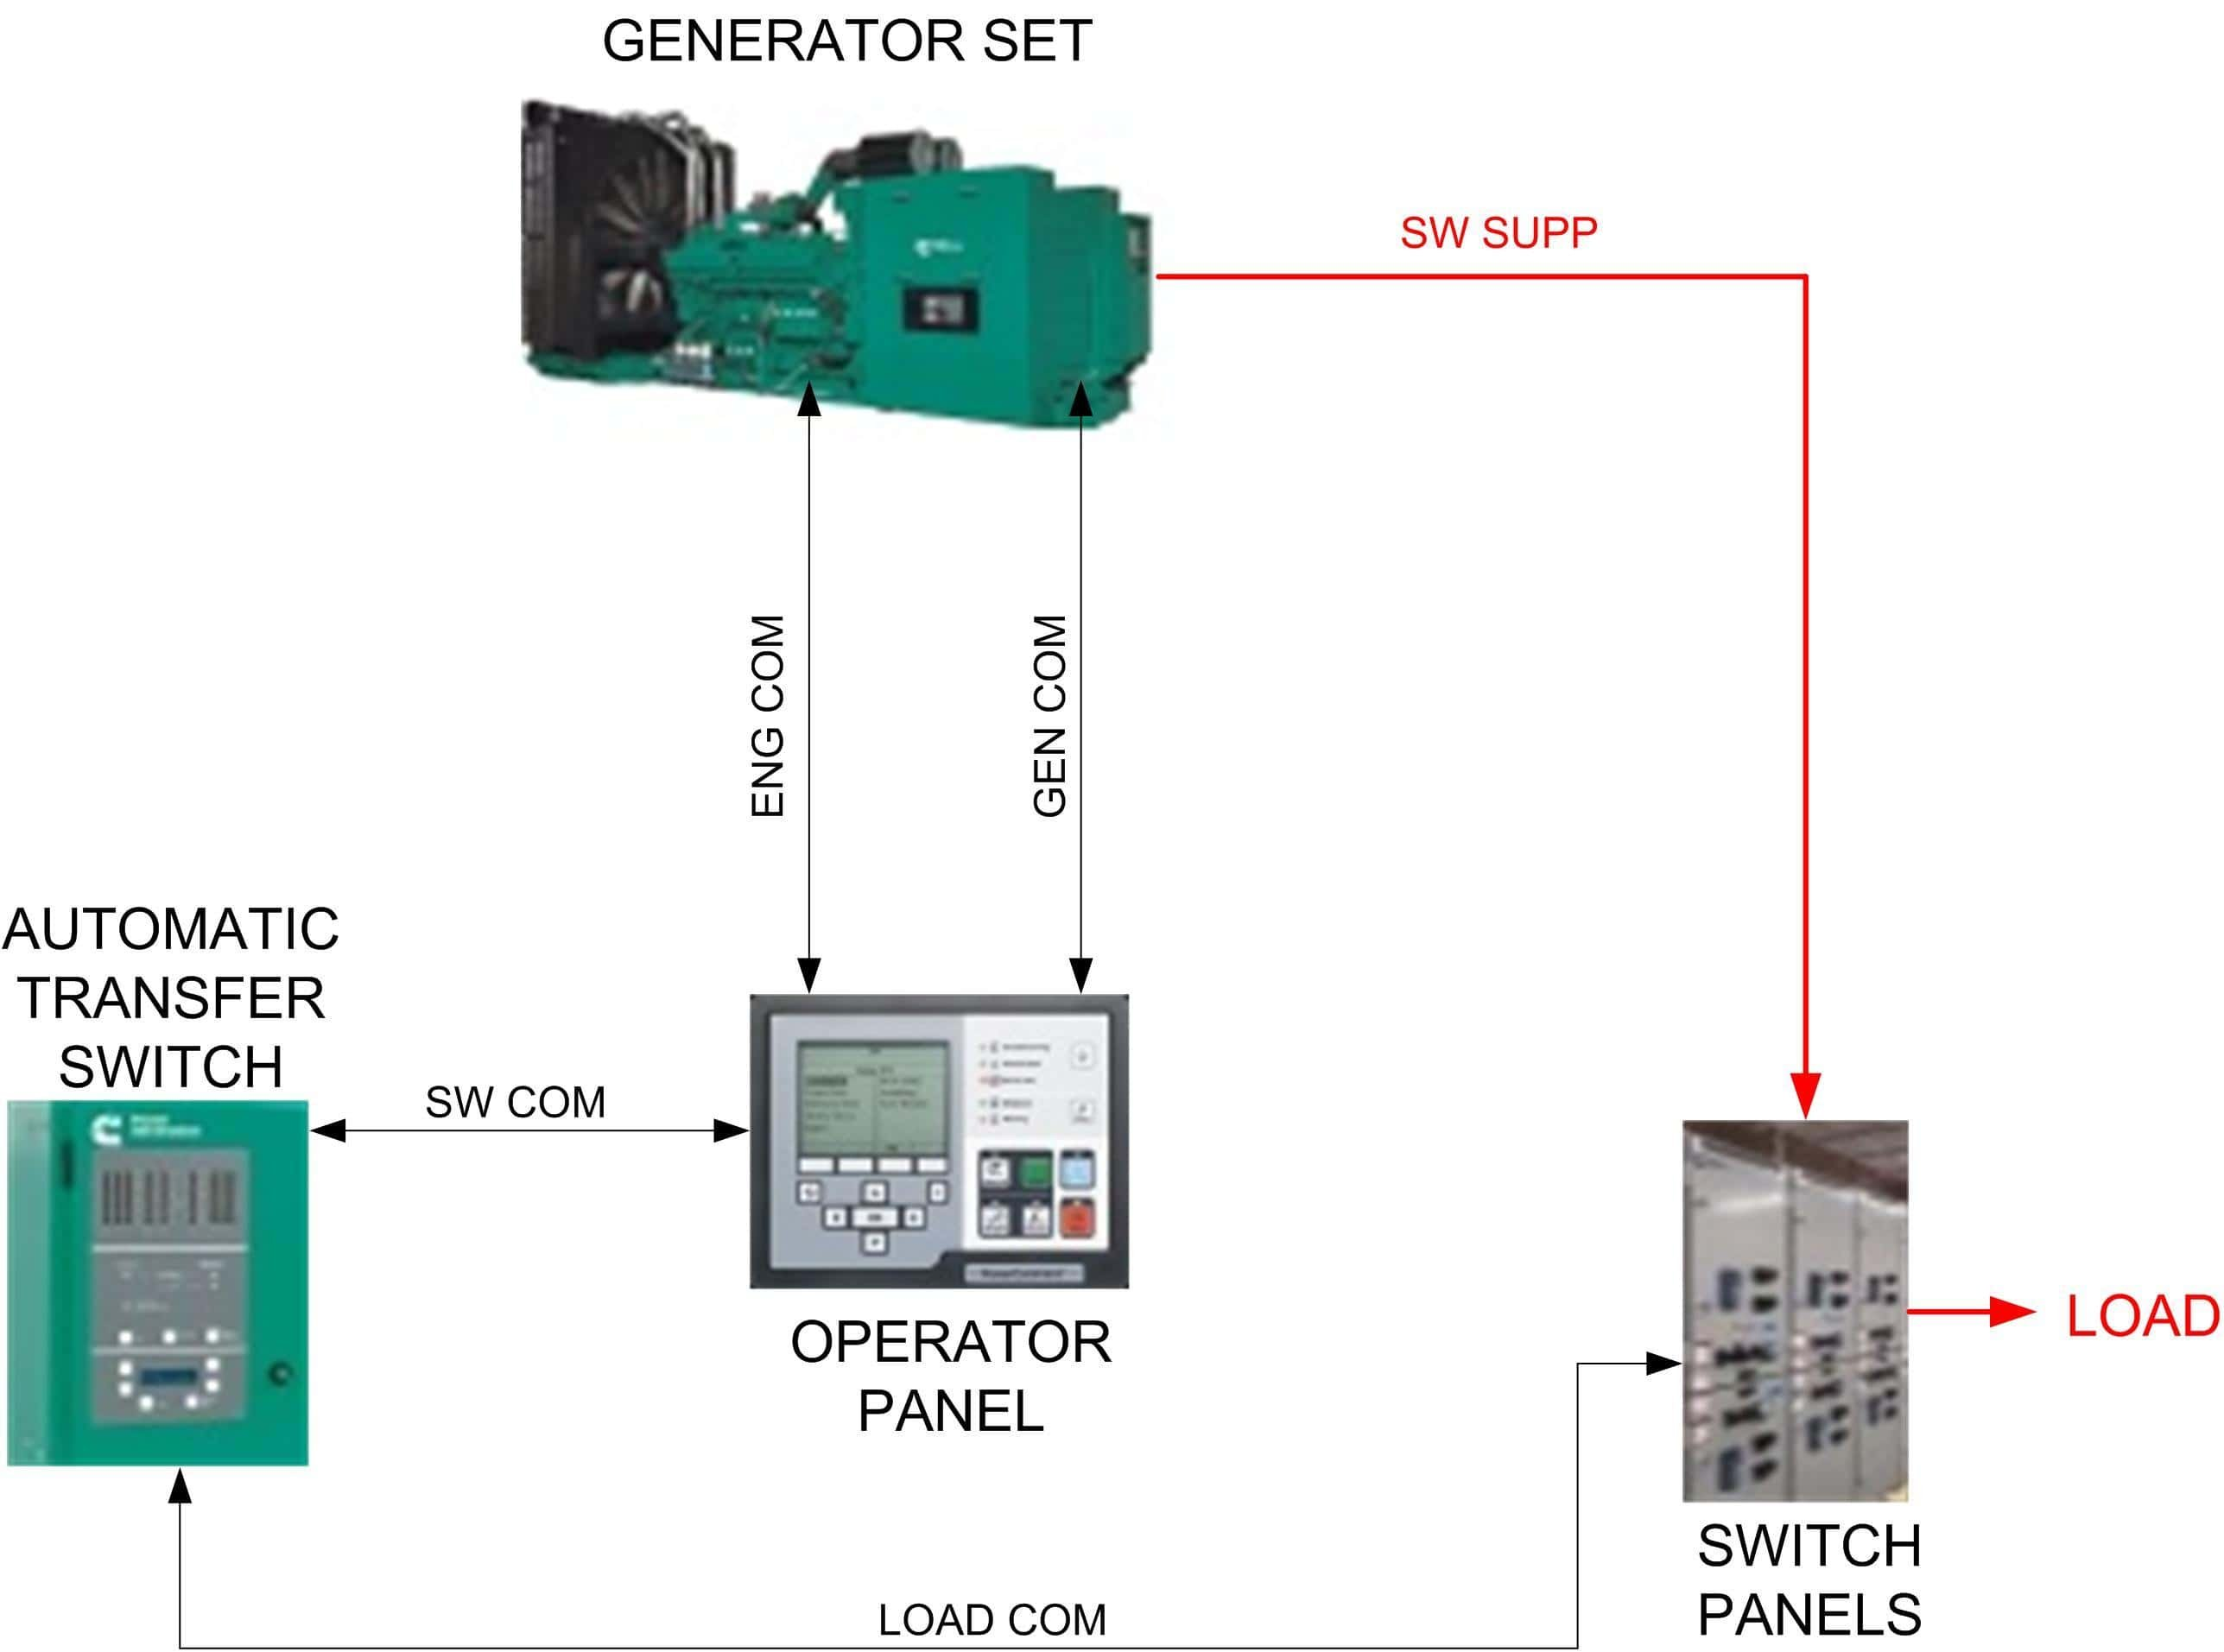 Katolight Generator Wiring Diagram 34 Images Control Panel Diagrams Figure 1 Minaspxwidth850height630